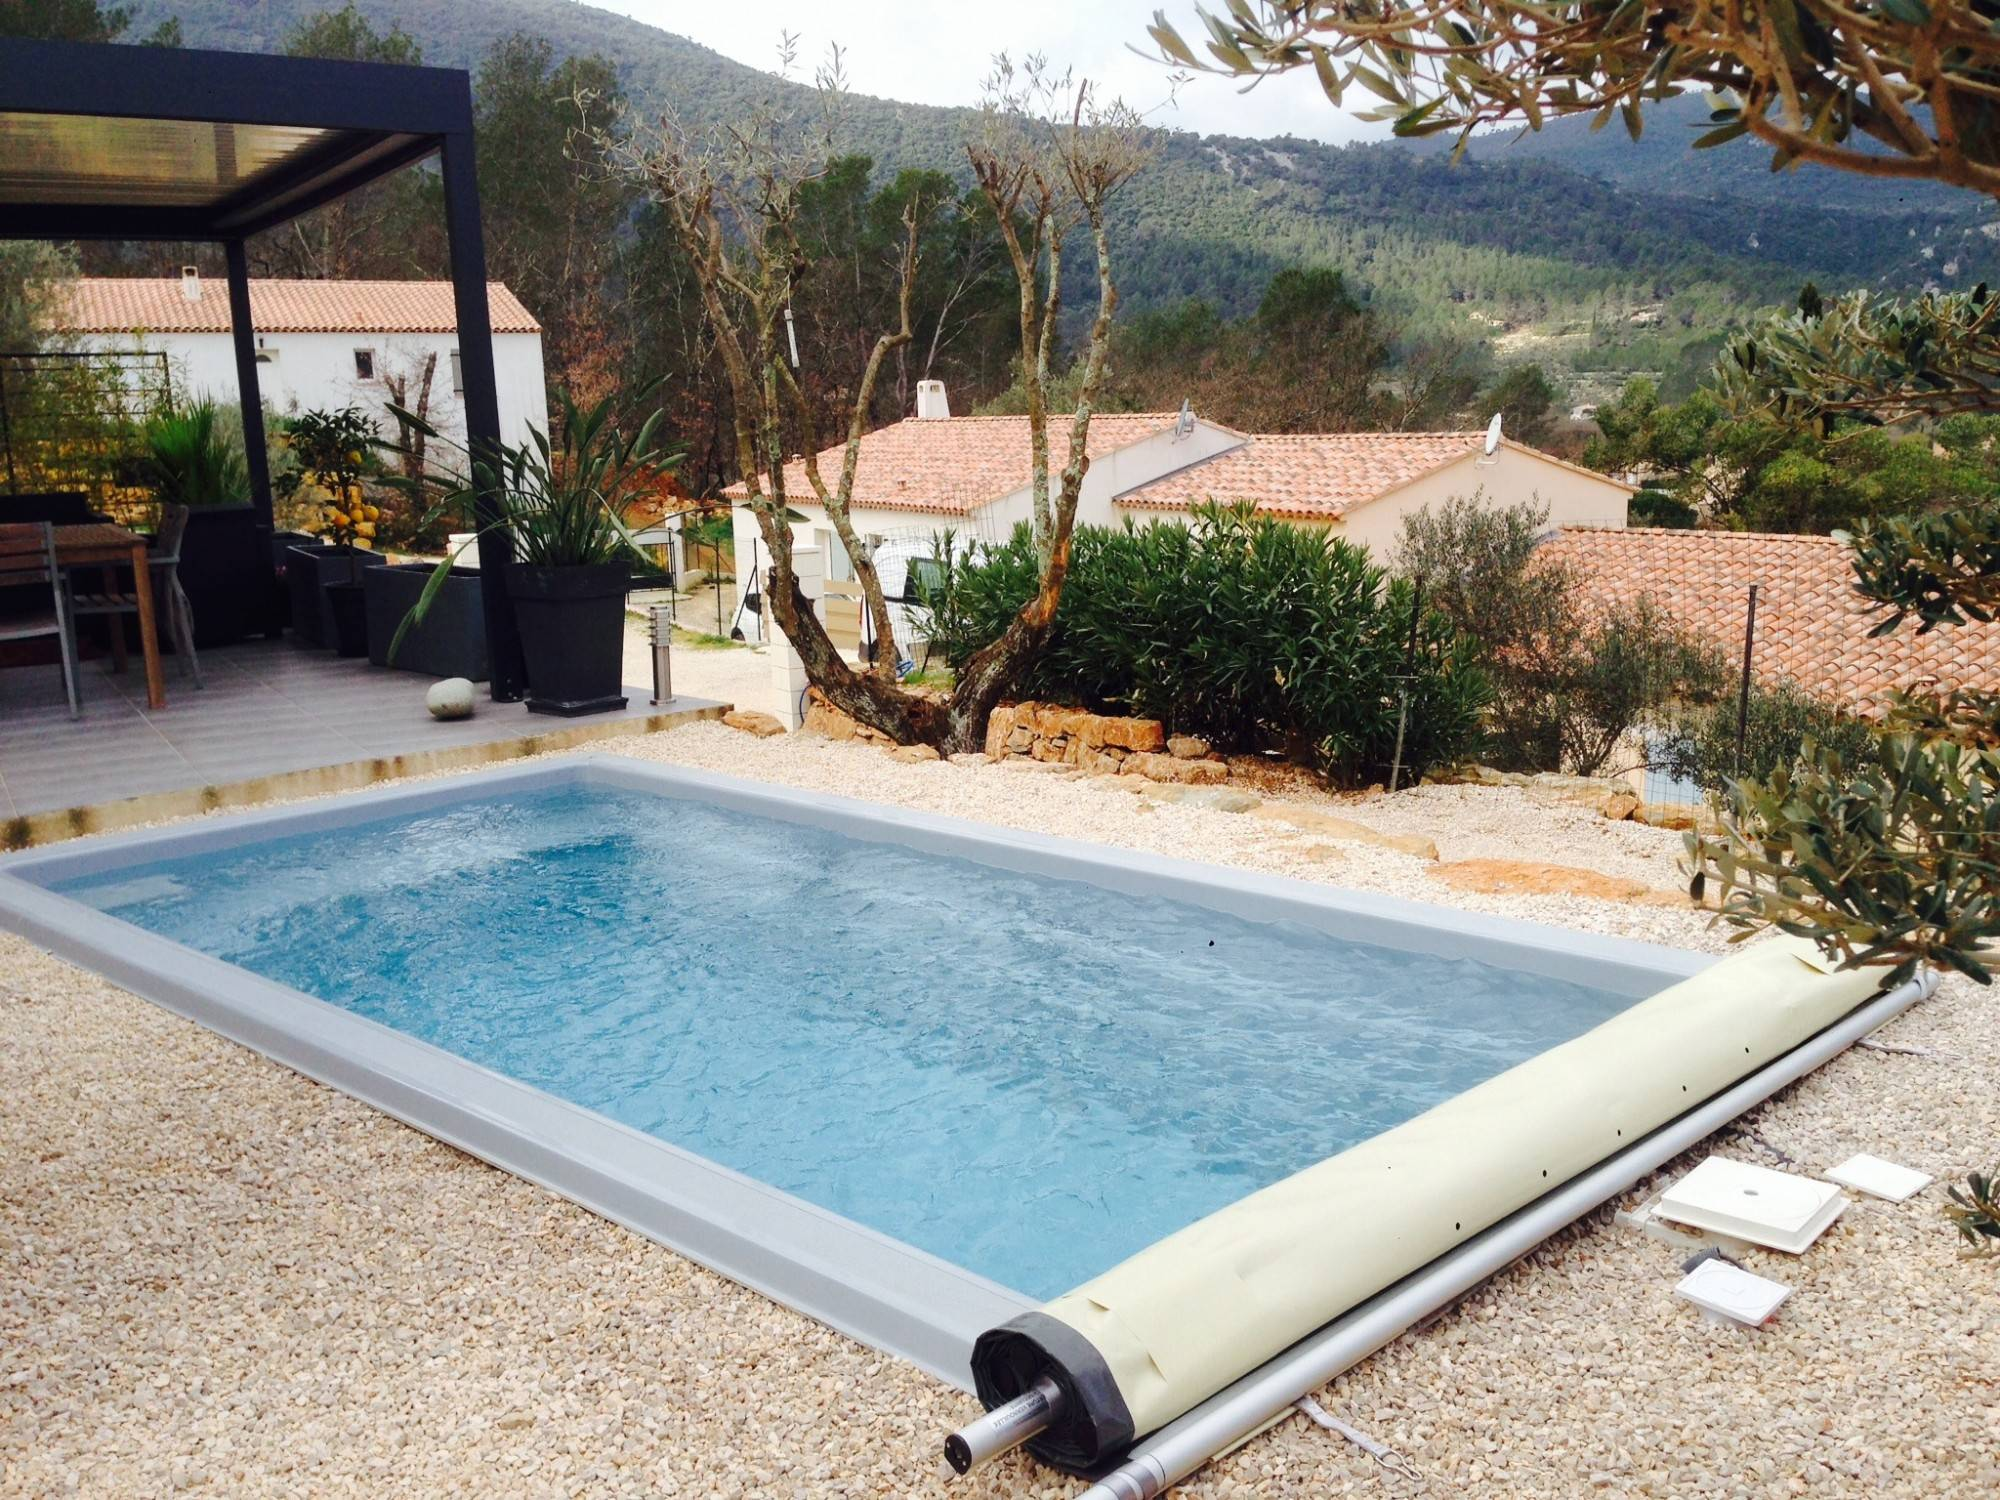 Tarif piscine creuse great d co piscine moderne pool prix - Prix d une piscine creuse ...